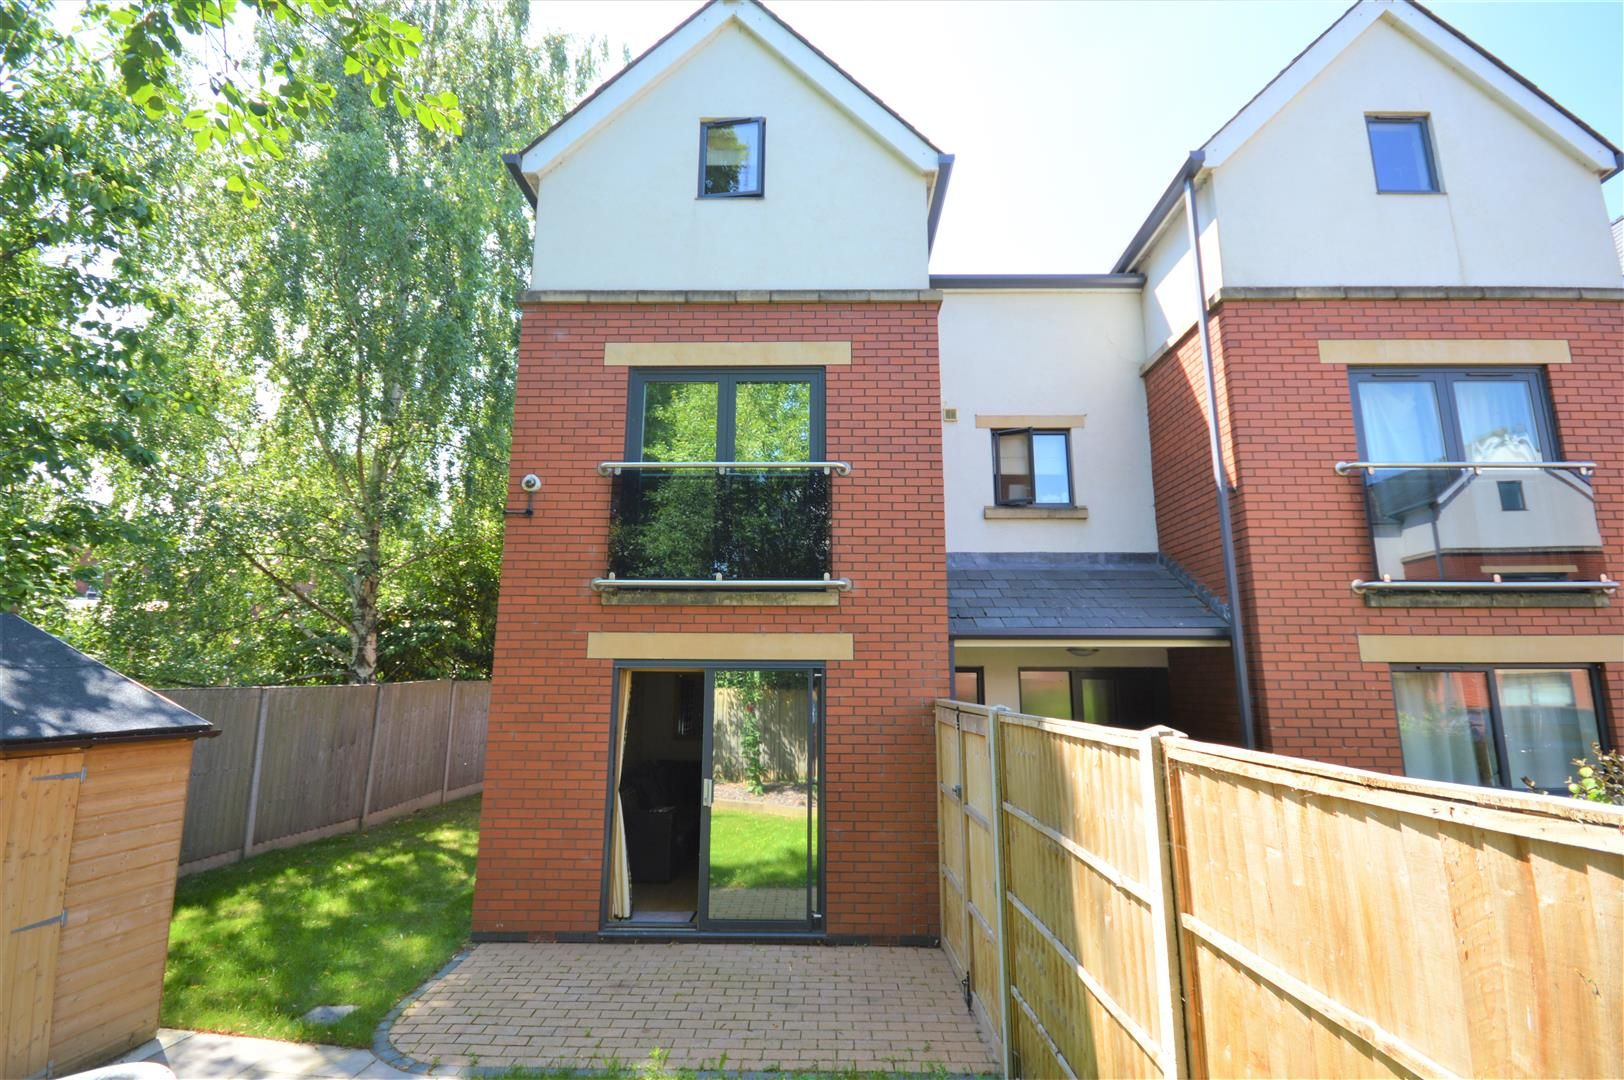 5 bed town-house for sale, HR4